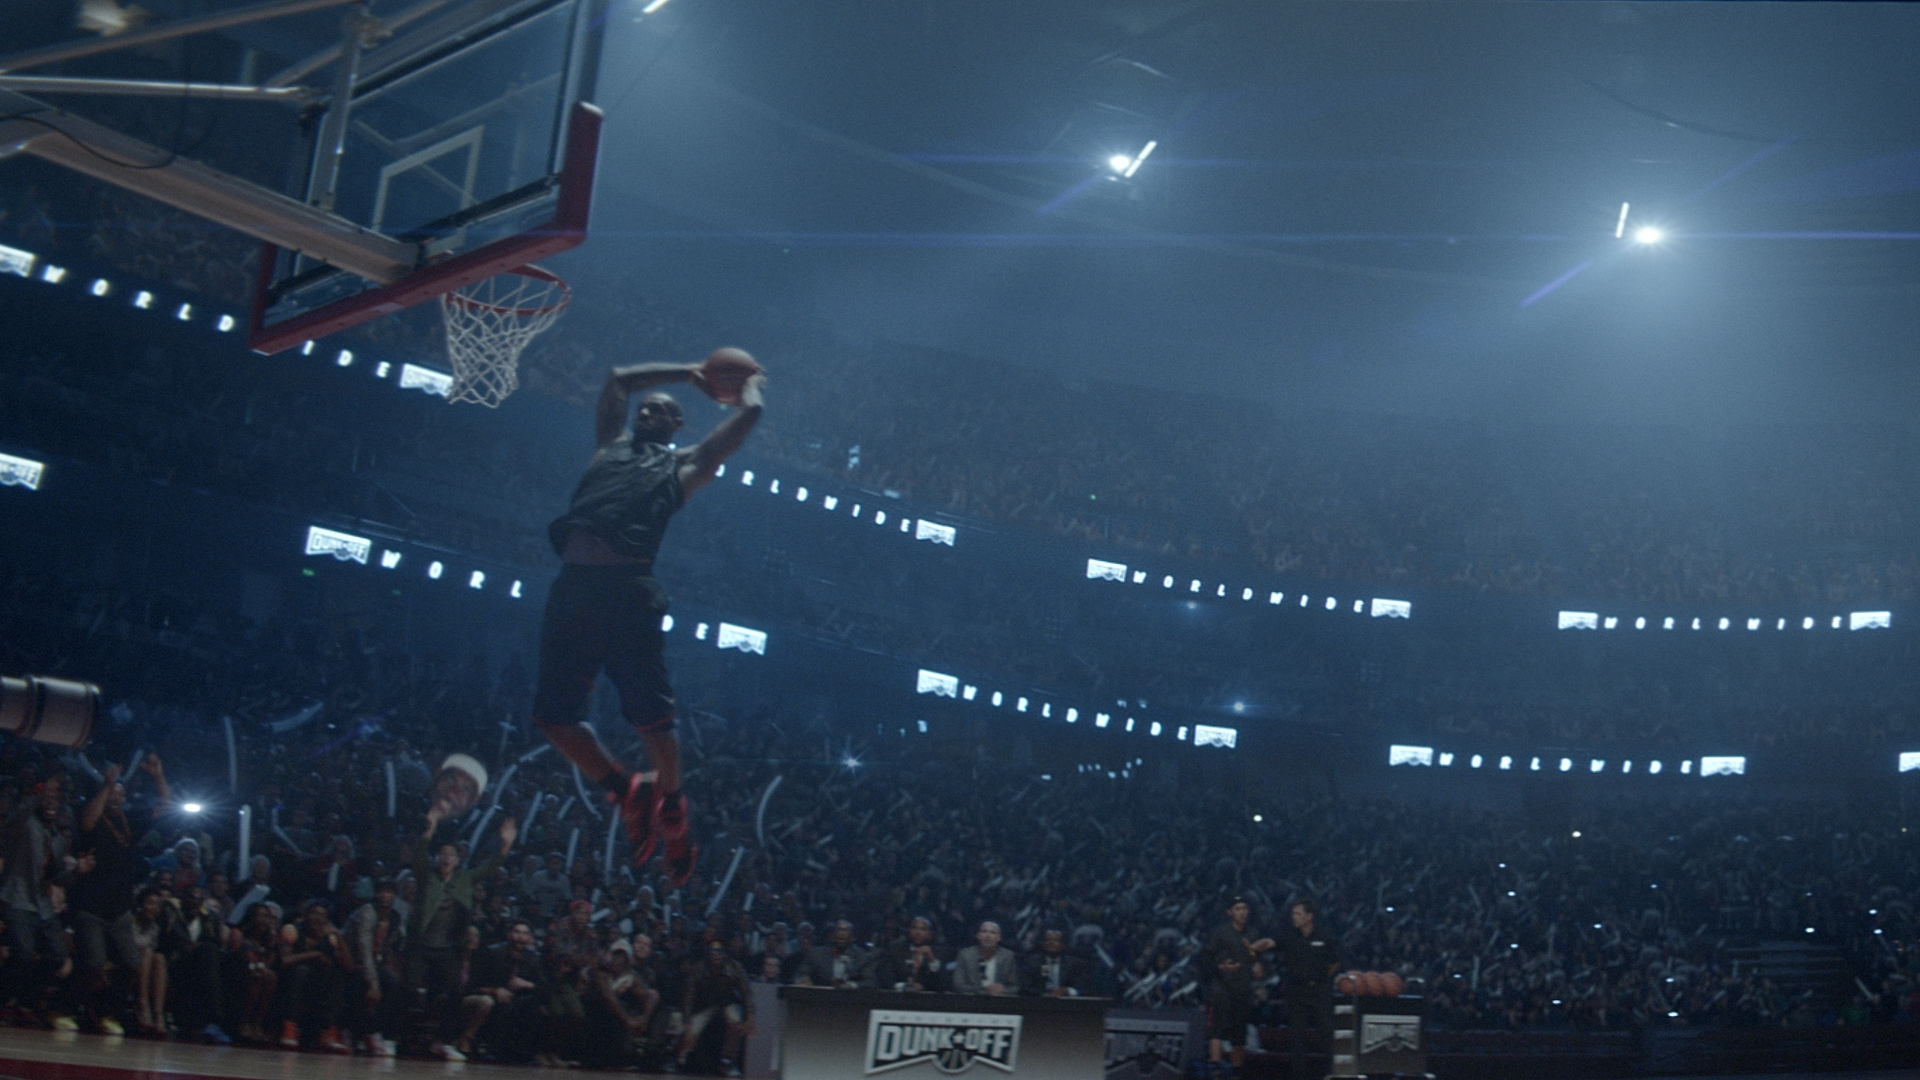 ... basketball lebron james rise commercial; nike redefines just do it with  new campaign nike news